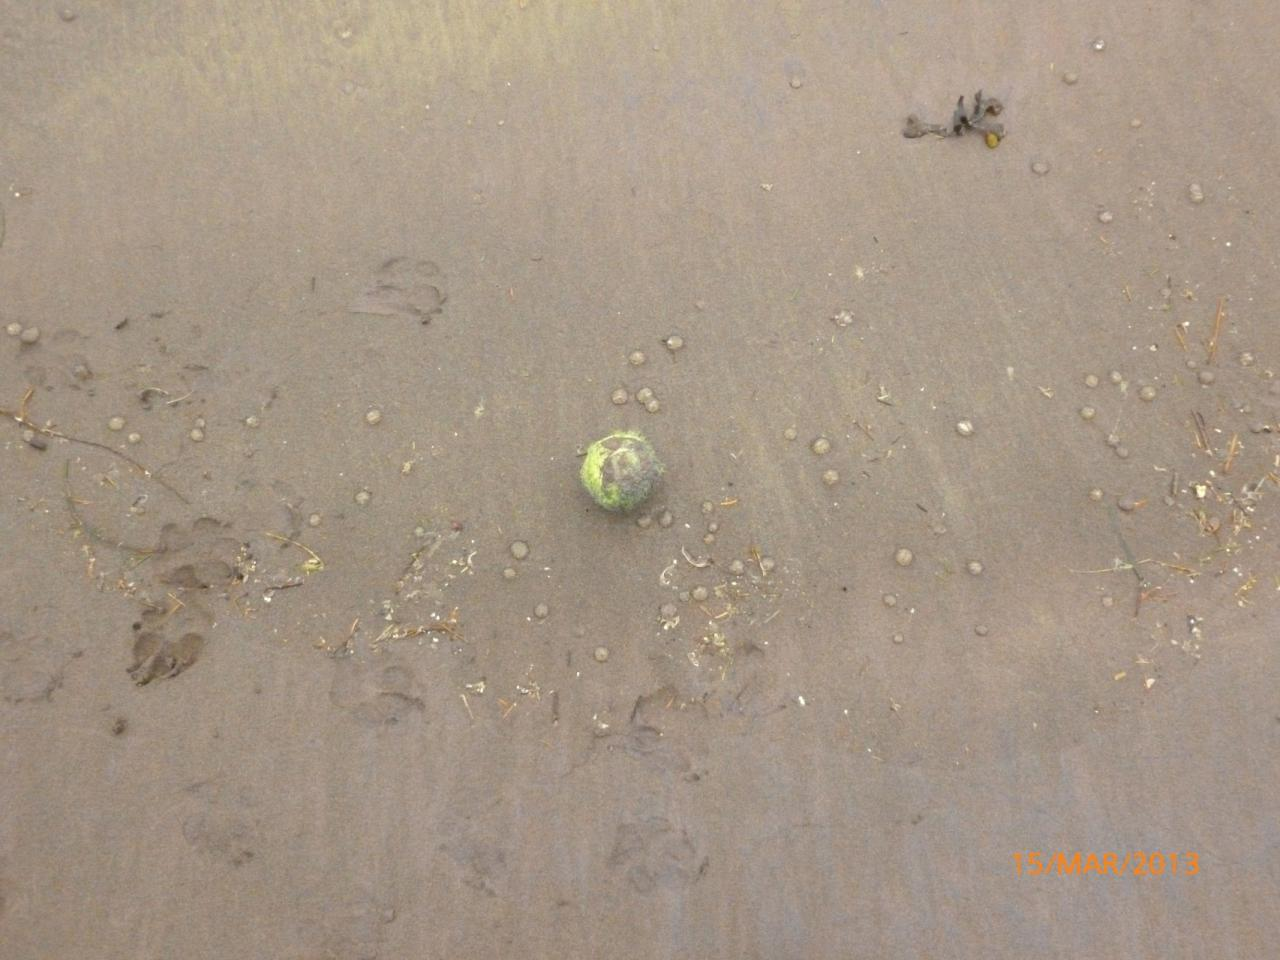 Driftline notable for substantial number of small clear jellyfish.  Tennis ball included for scale.